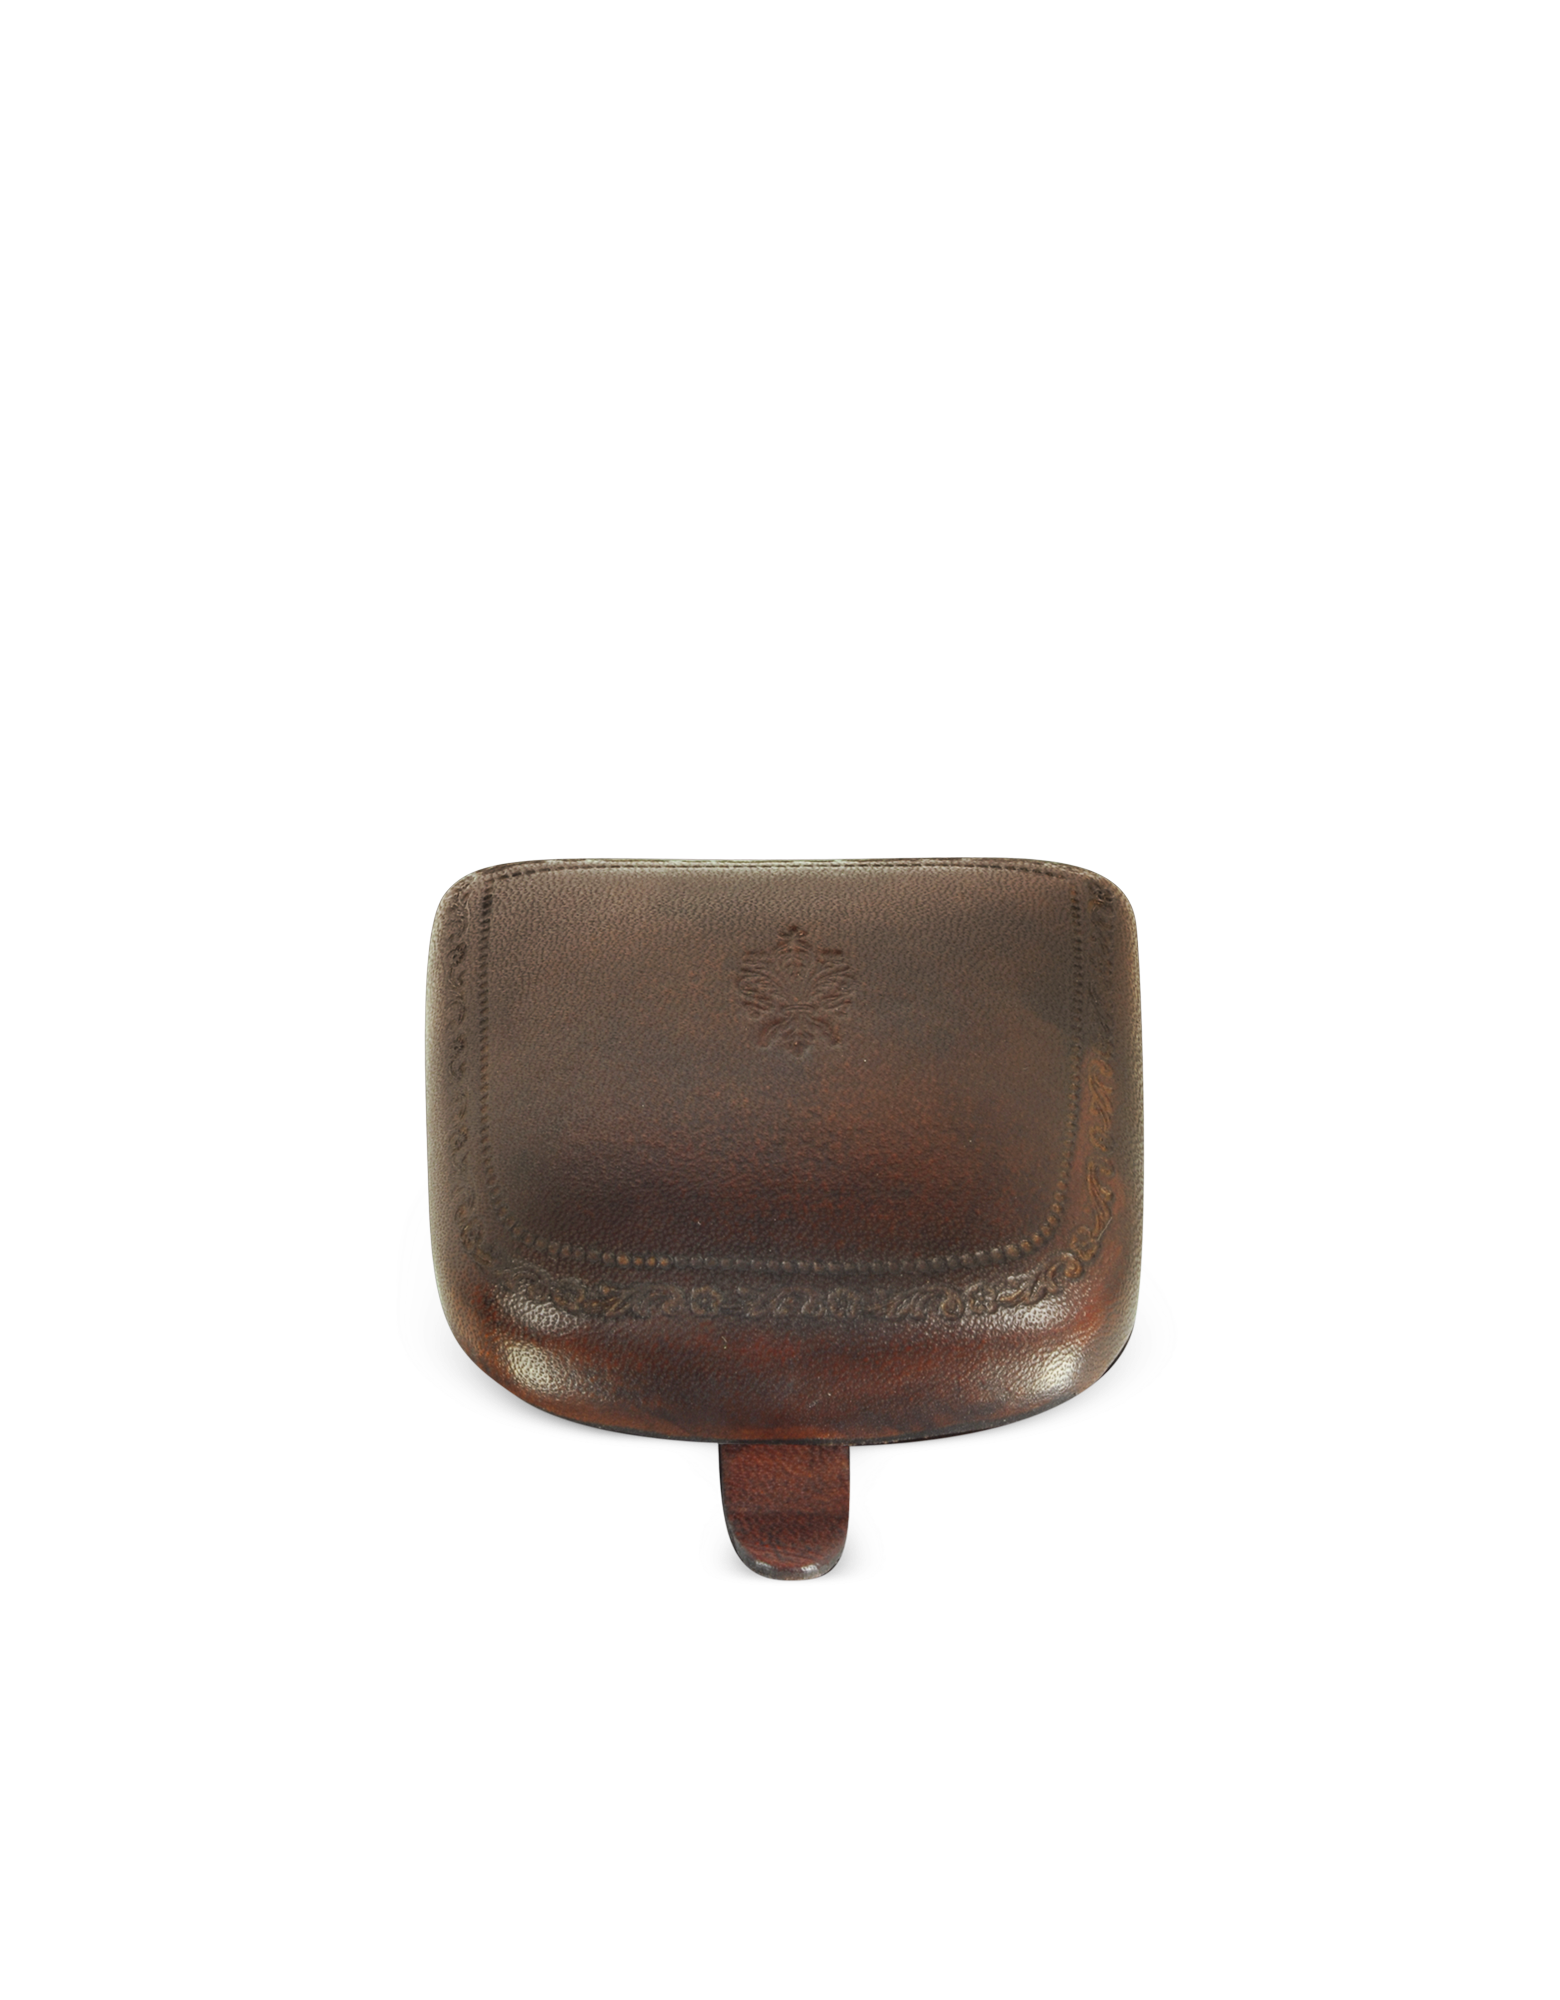 Image of Brown Leather Coin Purse